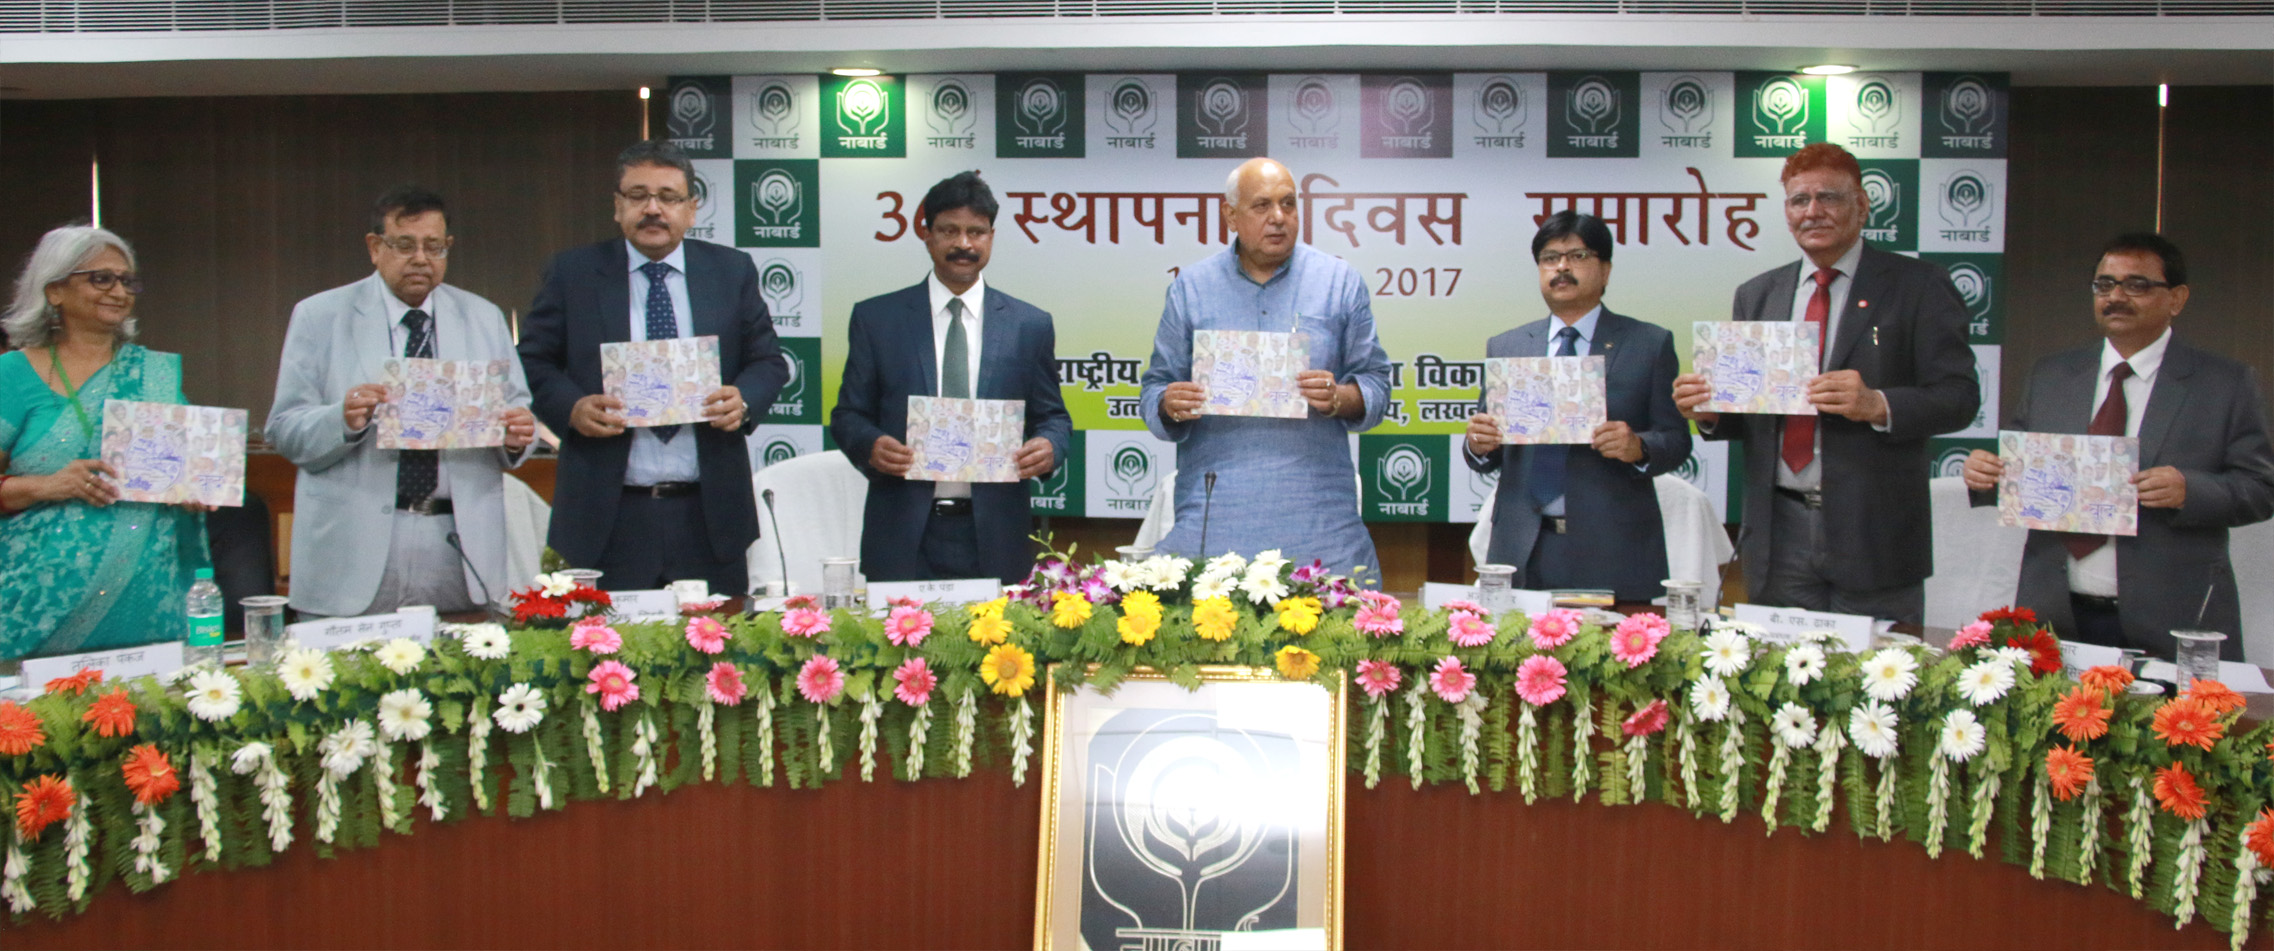 NABARD Book BOOND Launch by Agriculture Minister of UP with NABARD and RBI Officials